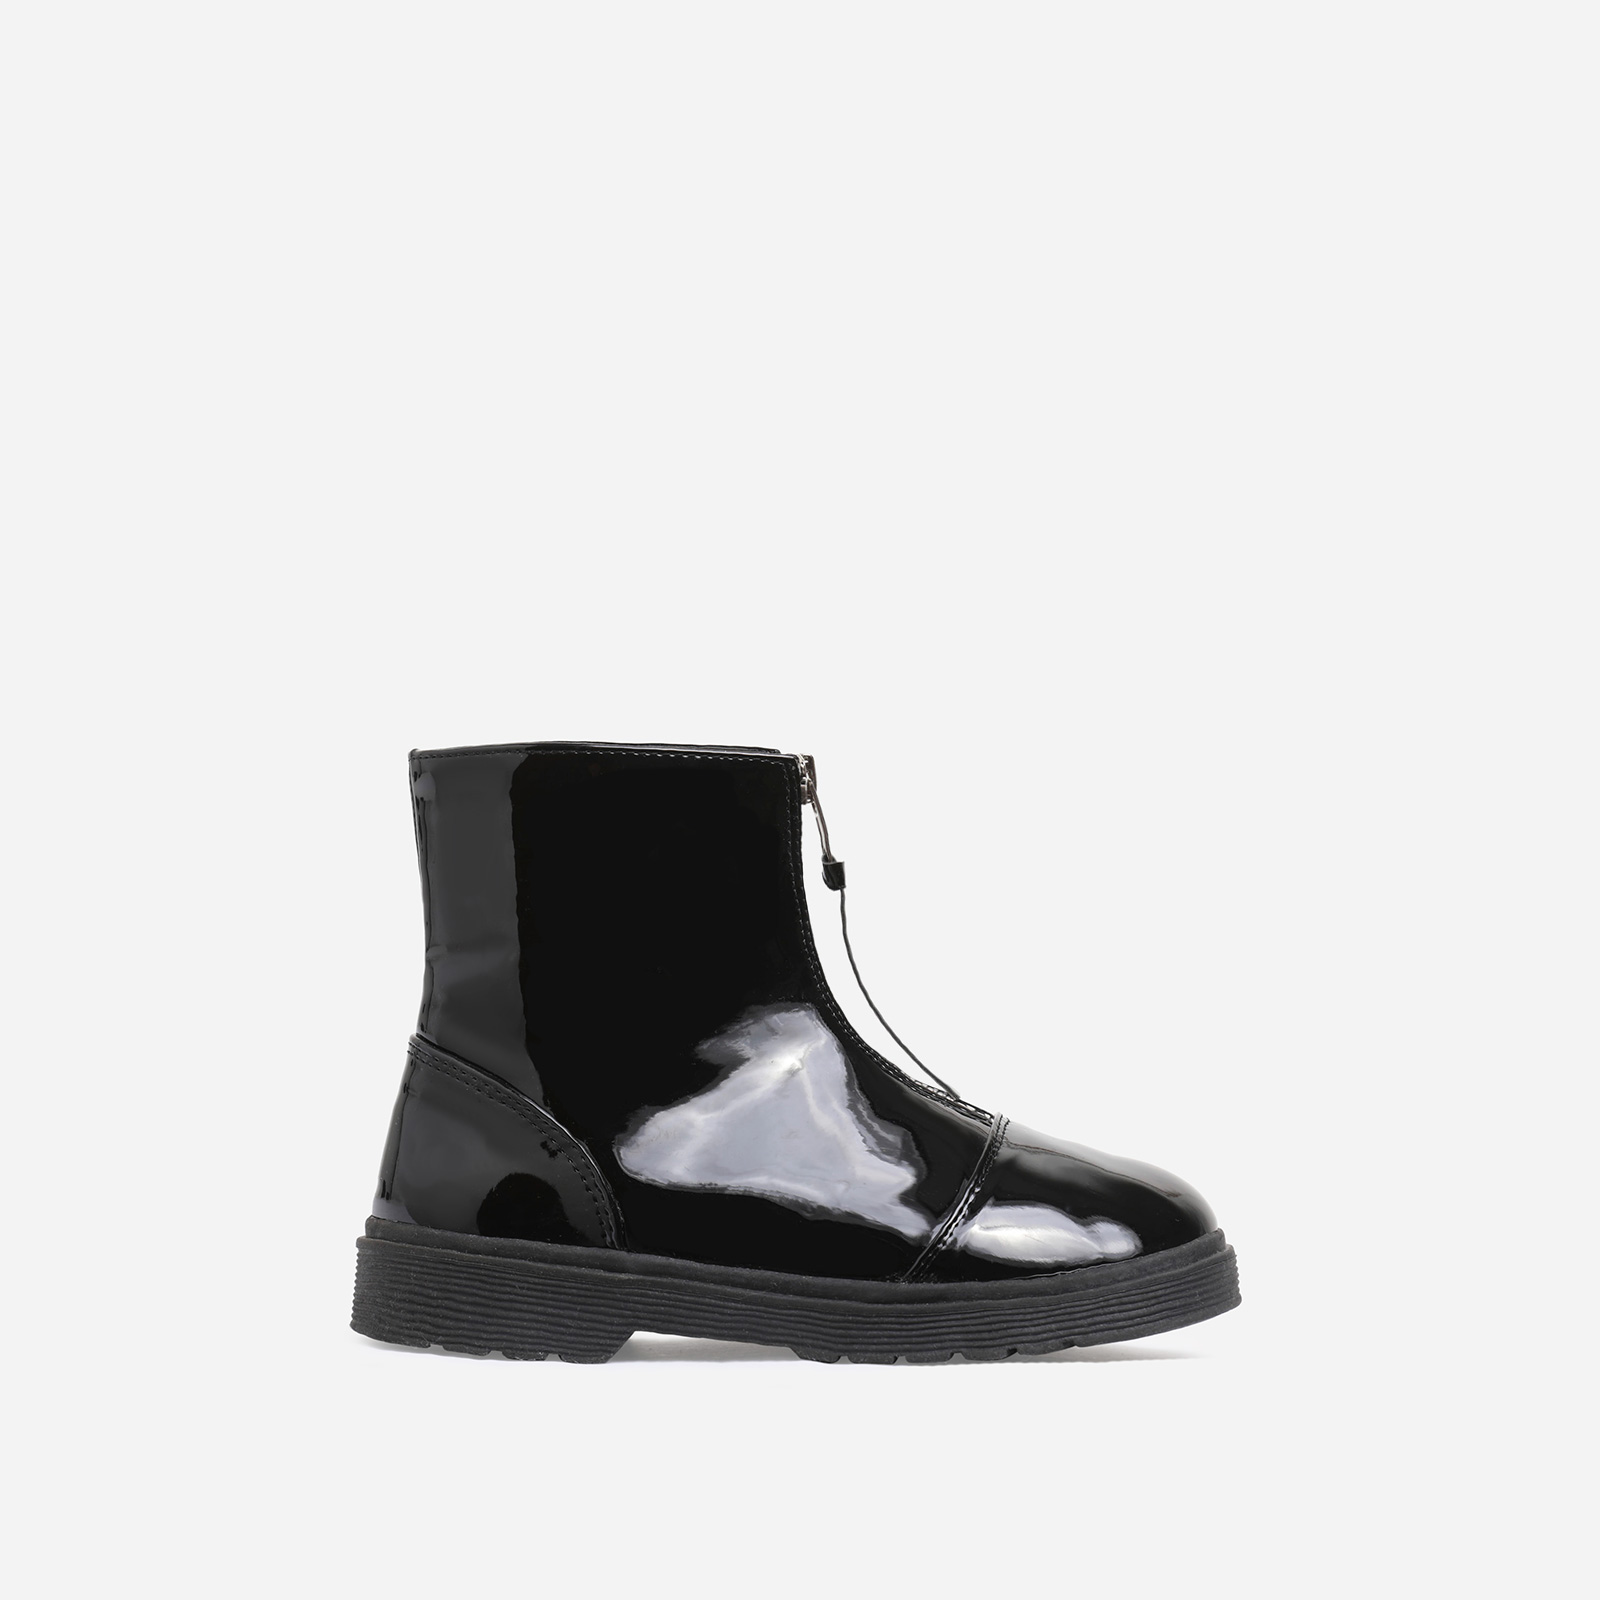 Centre Girl's Zip Detail Ankle Biker Boots In Black Patent